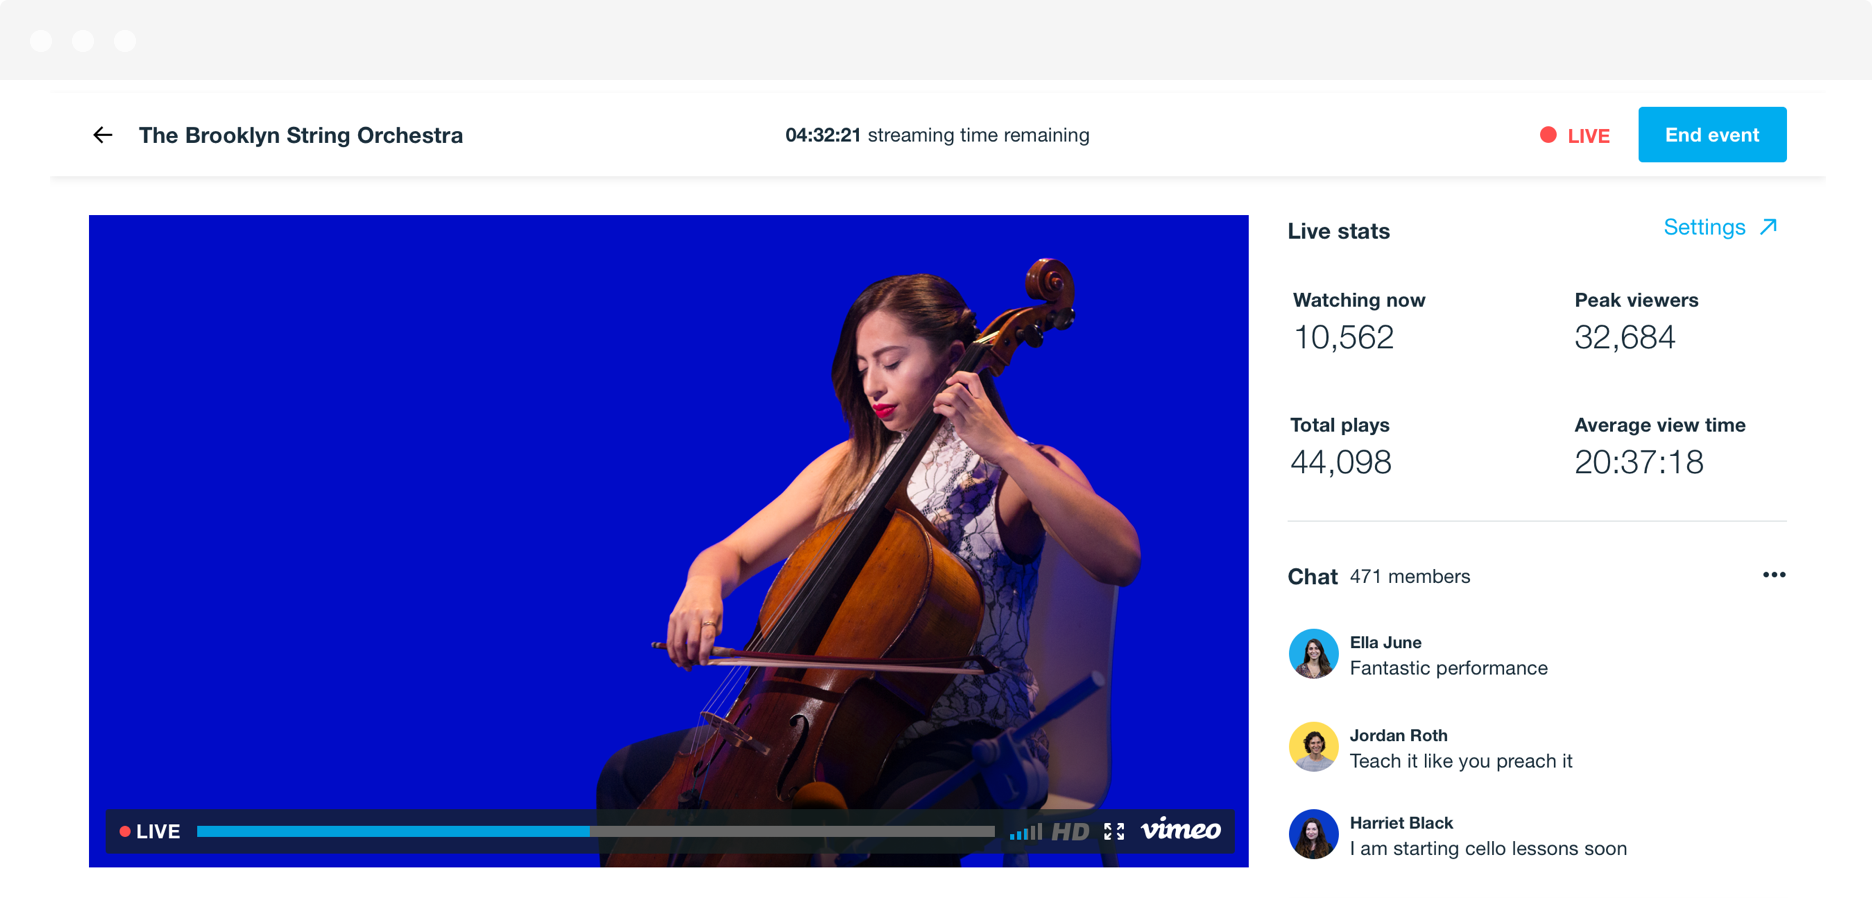 A static shot from a live stream of a cellist, showing the video player as well as the live stats and audience chat in real-time on the righthand side.